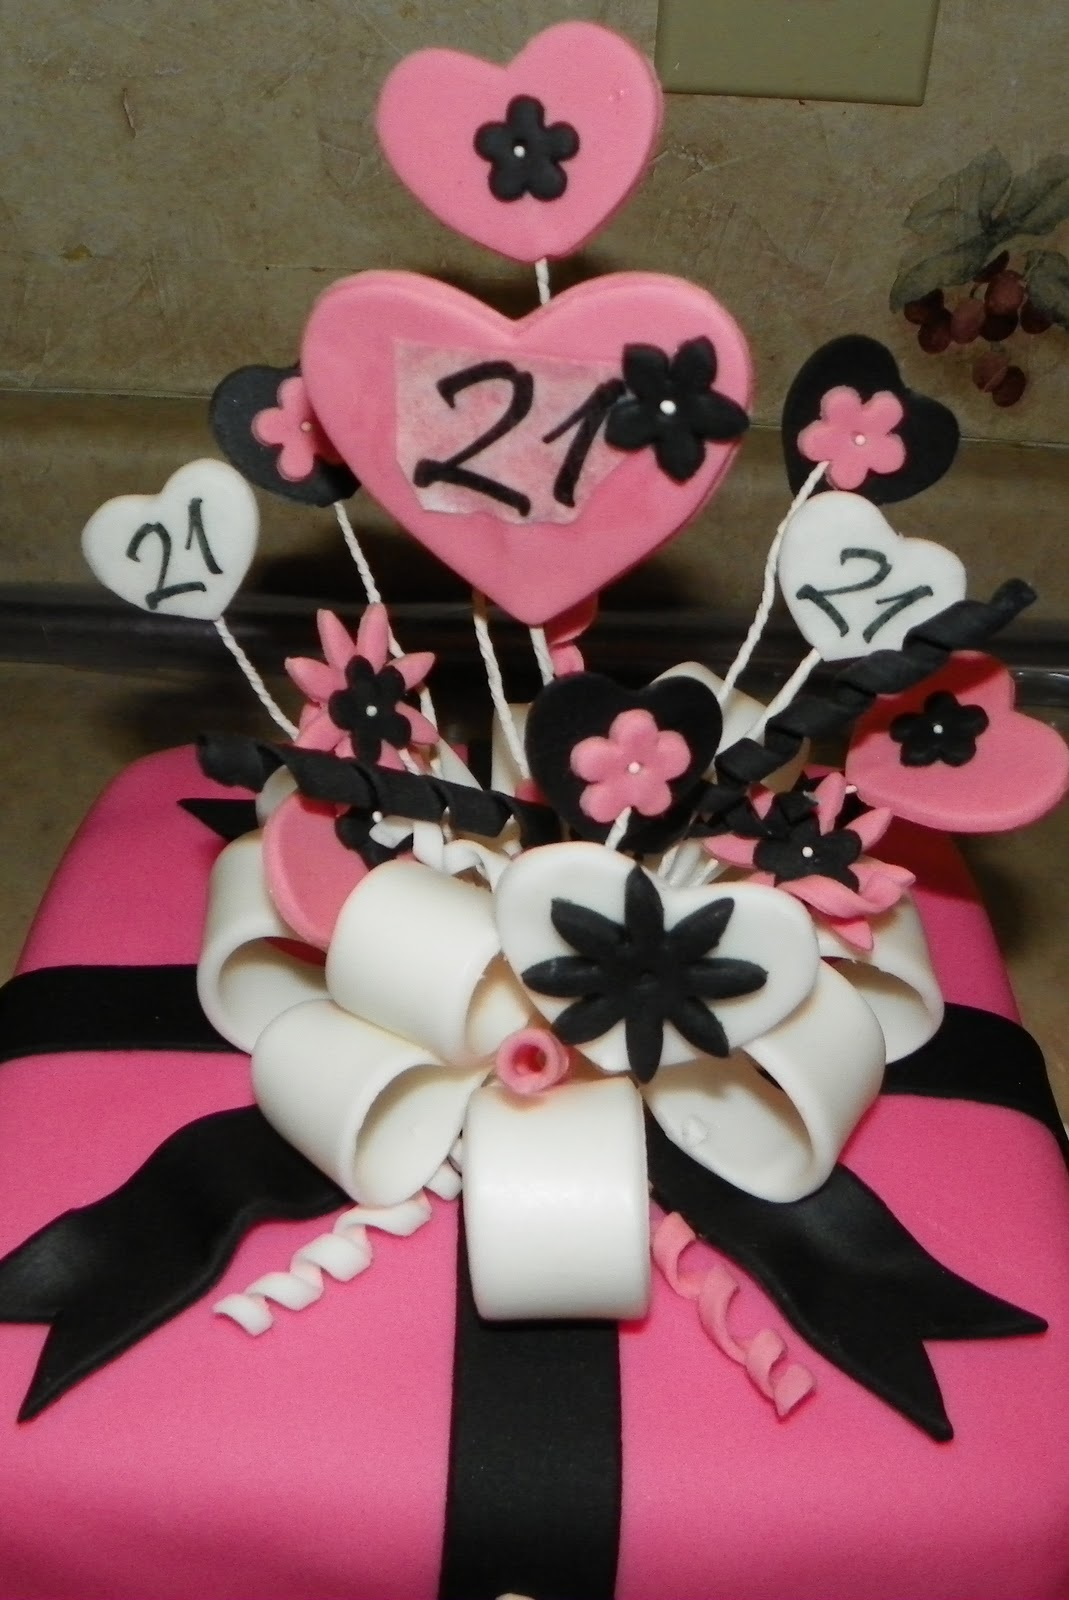 pink heart birthday cakes for teenagers - Birthday Cake Designs Ideas